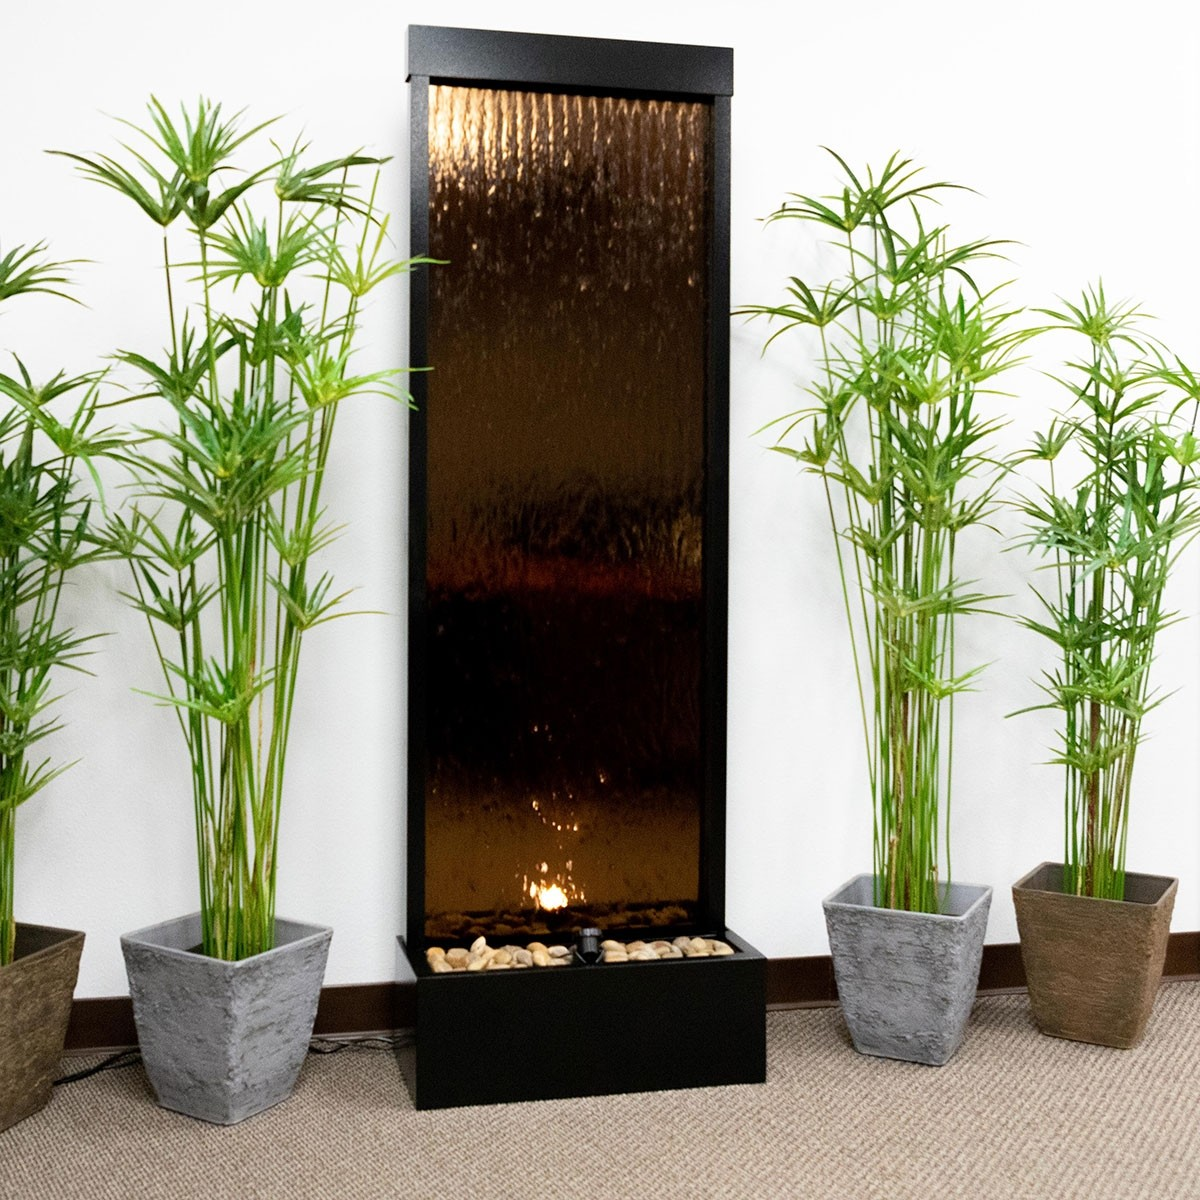 6' Tall Bronze Mirrored Water Fountain | Water Wall